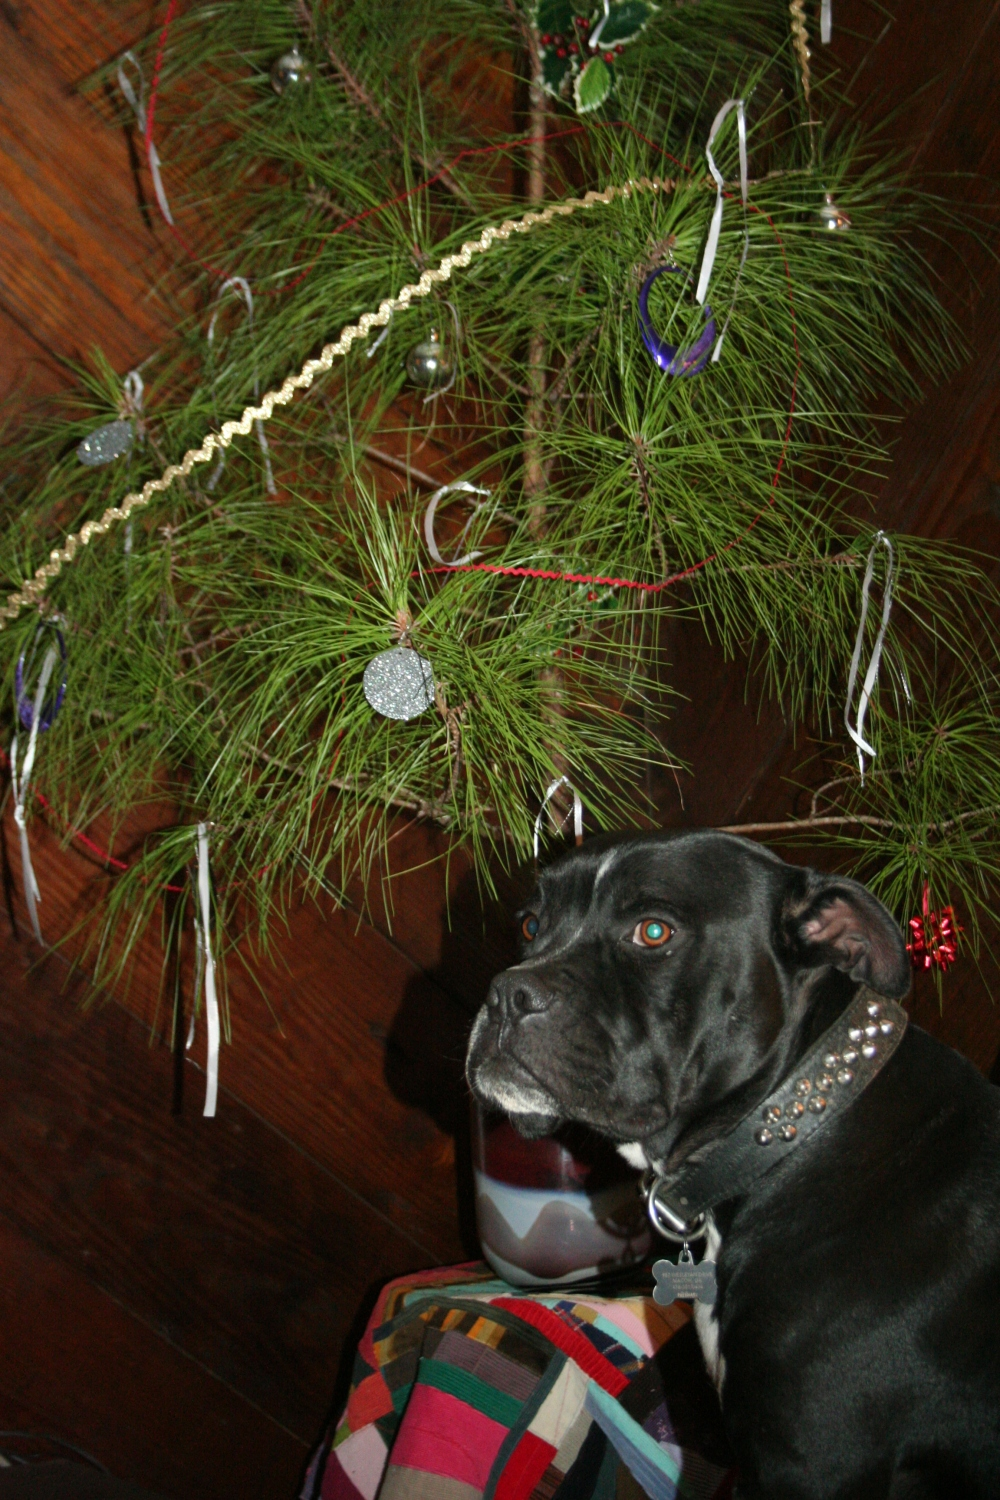 Otis under the Charlie brown xmas tree